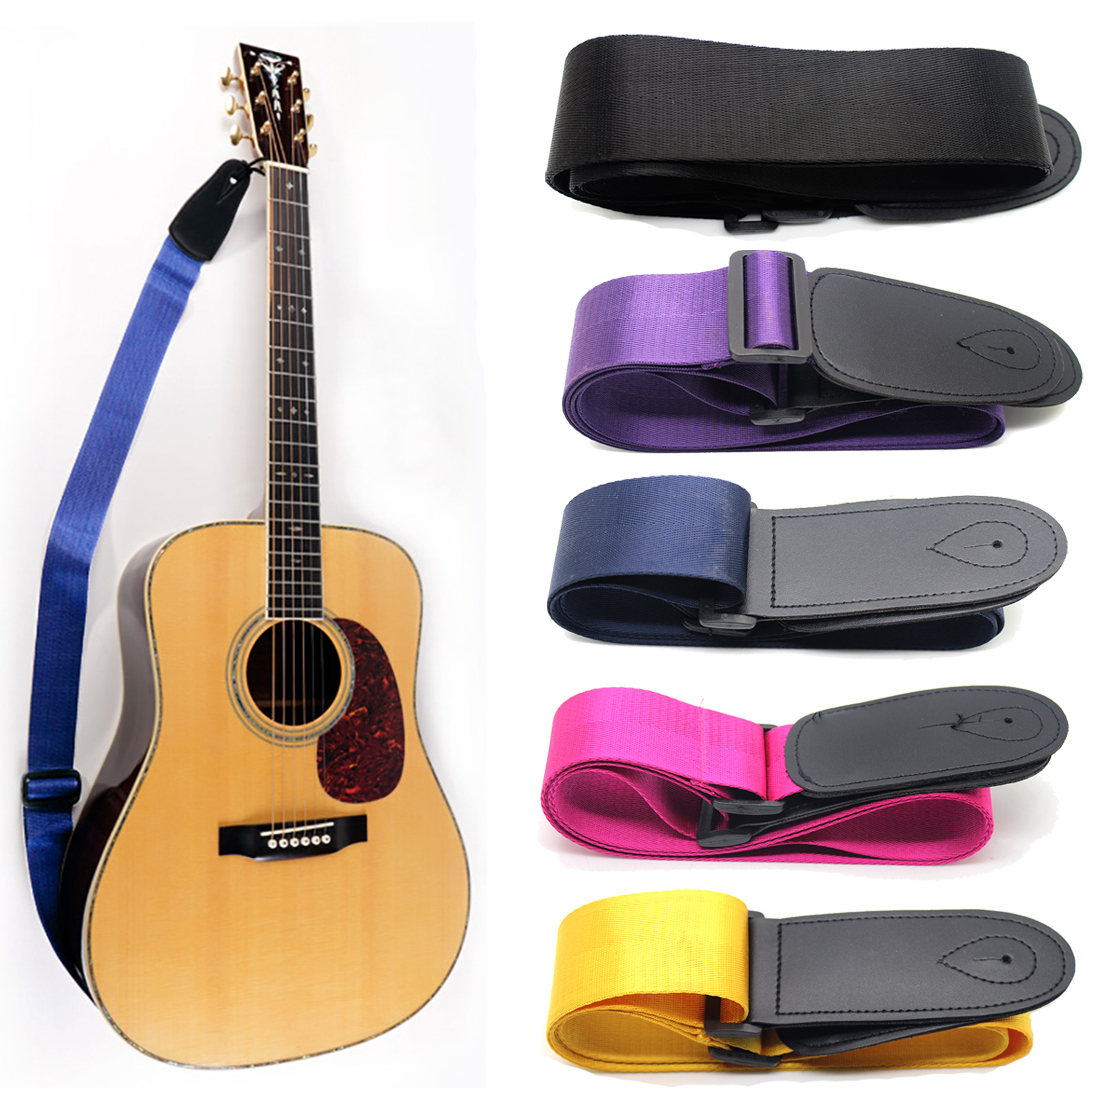 Musical Instrument Accessories For Folk Electric Acoustic Guitar Adjustable Guitar Chemical Strap Leather Ends Free Shipping(China (Mainland))